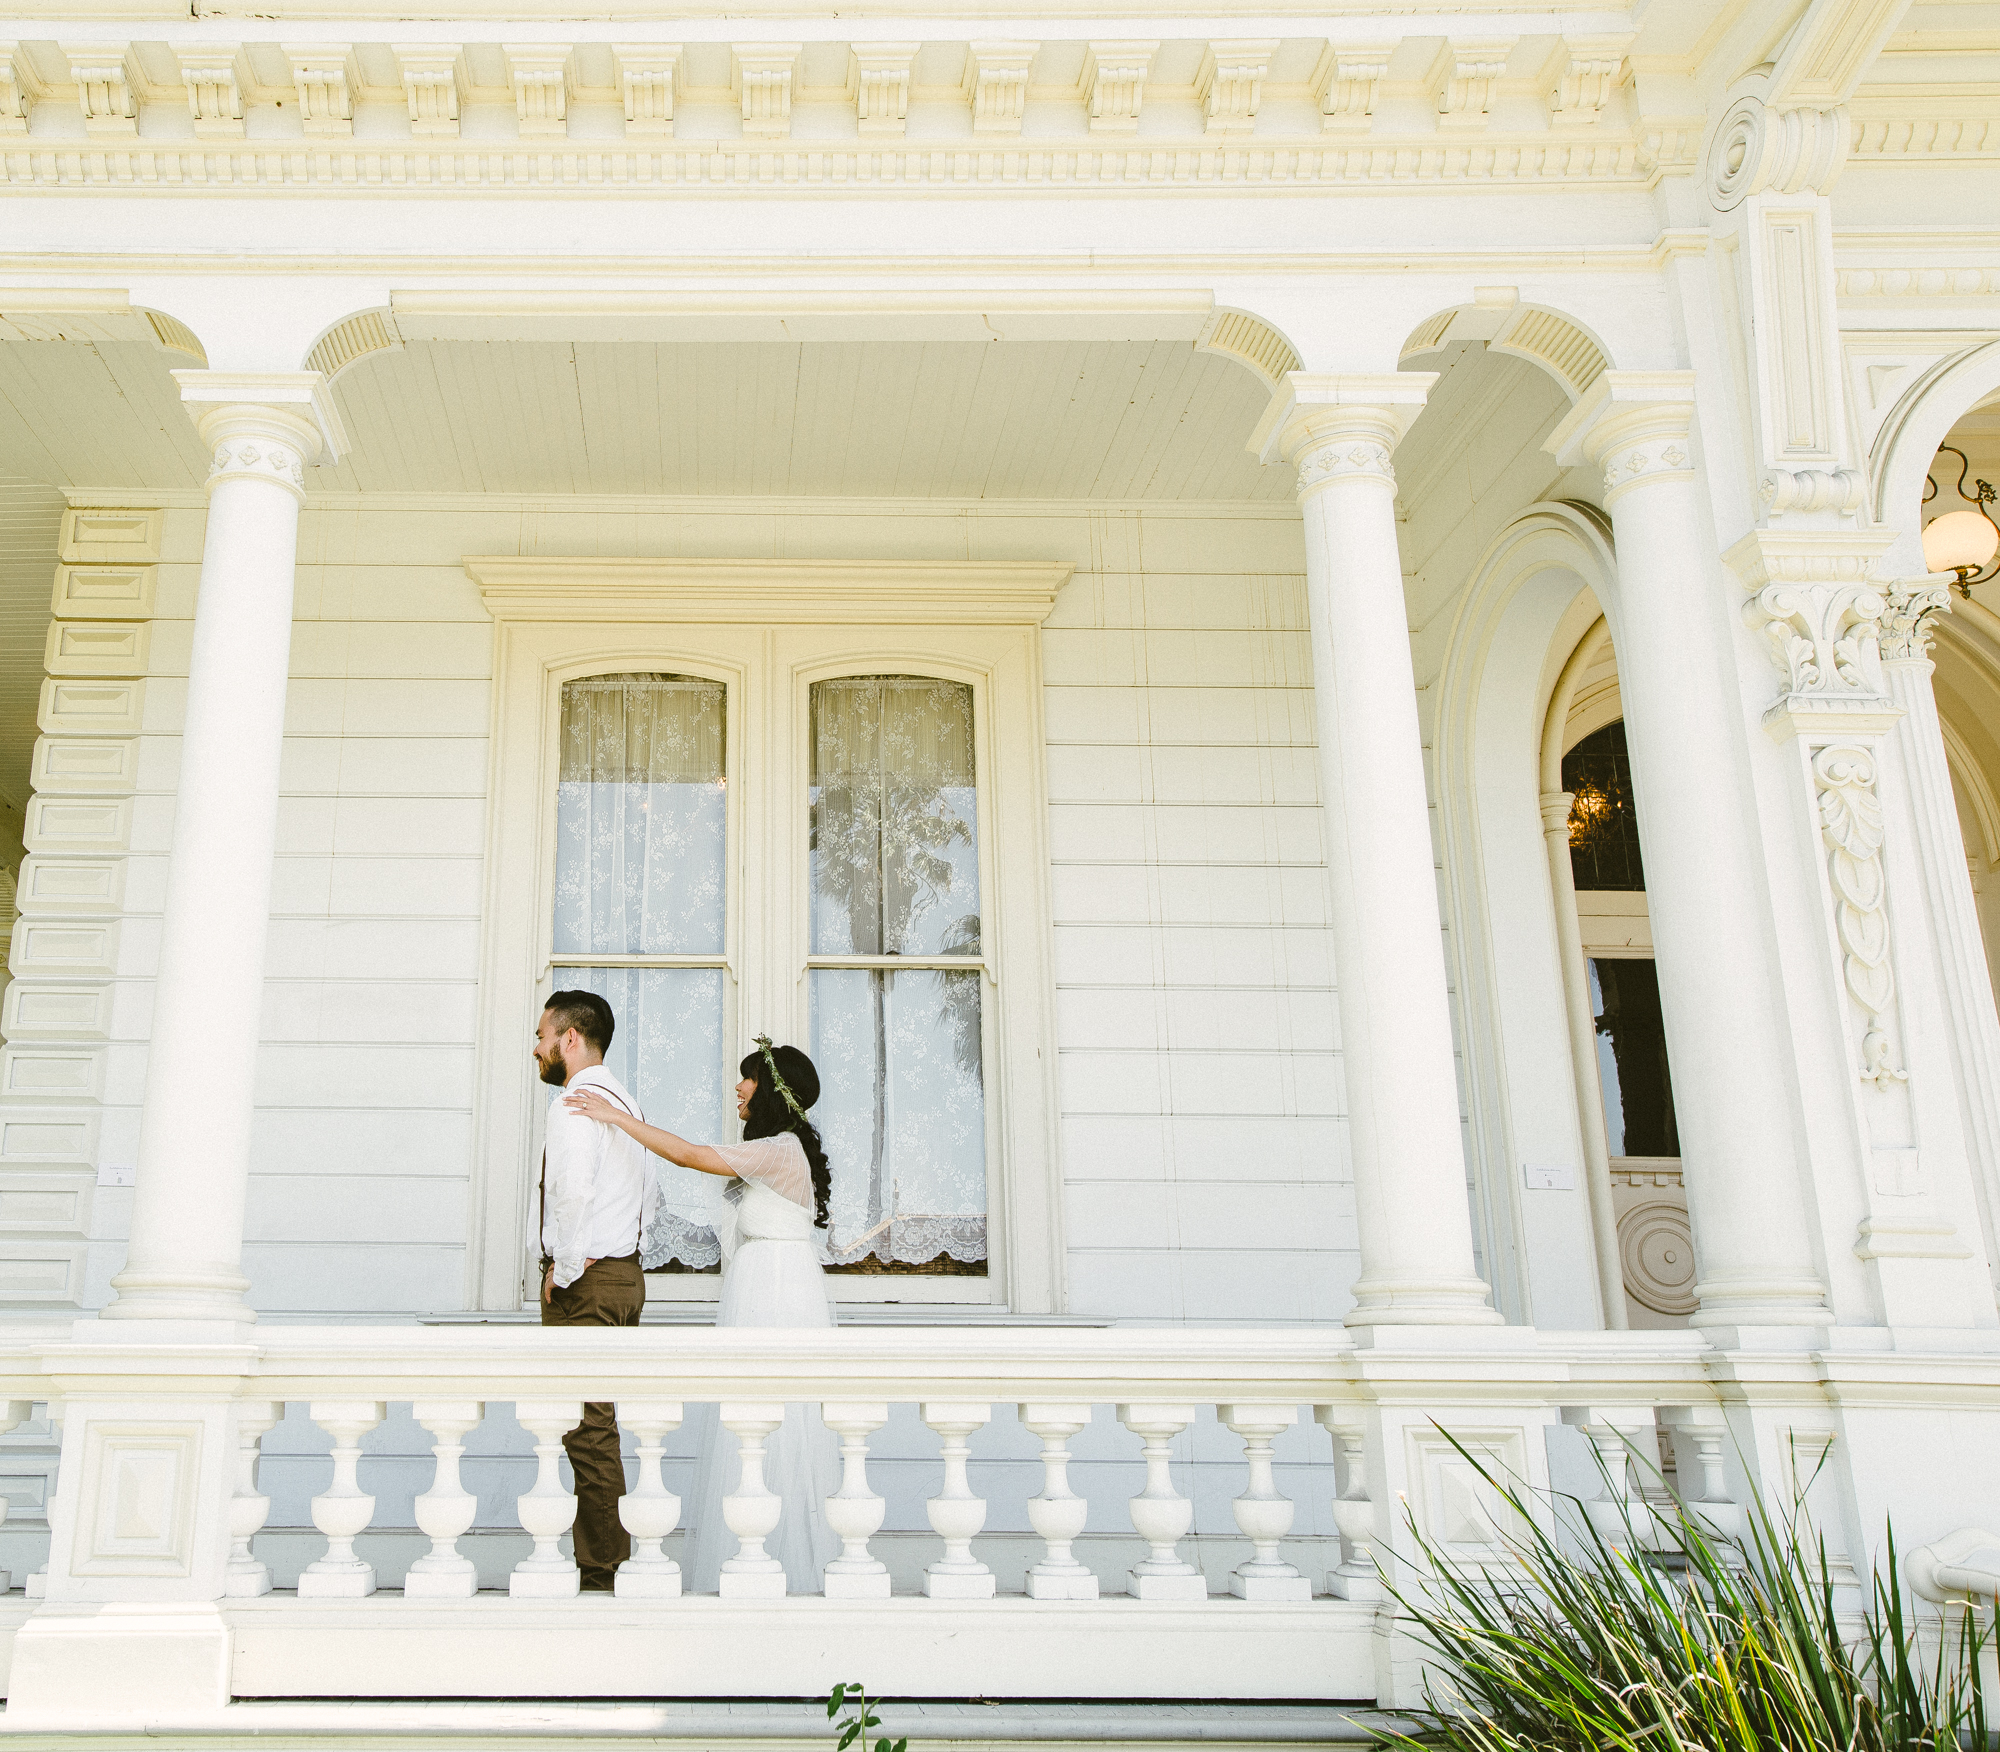 Isaiah & Taylor Photography - Los Angeles - Destination Wedding Photographers - Heritage Square Museum -31.jpg